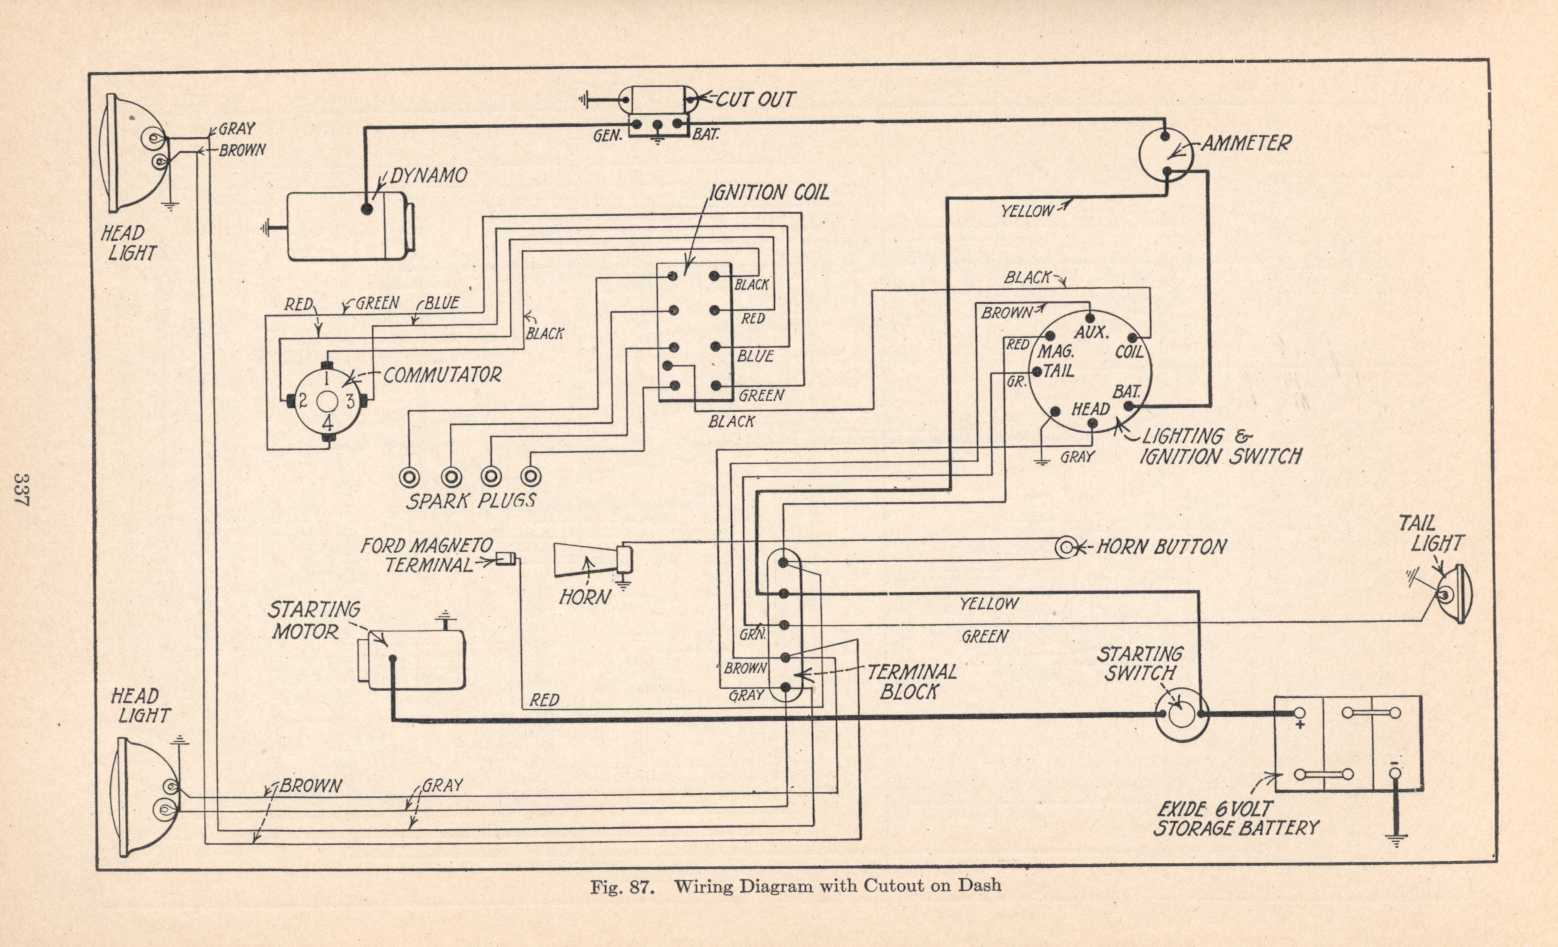 wiring diagram for 29 ford model a the wiring diagram model a wire diagram model wiring diagrams for car or truck wiring